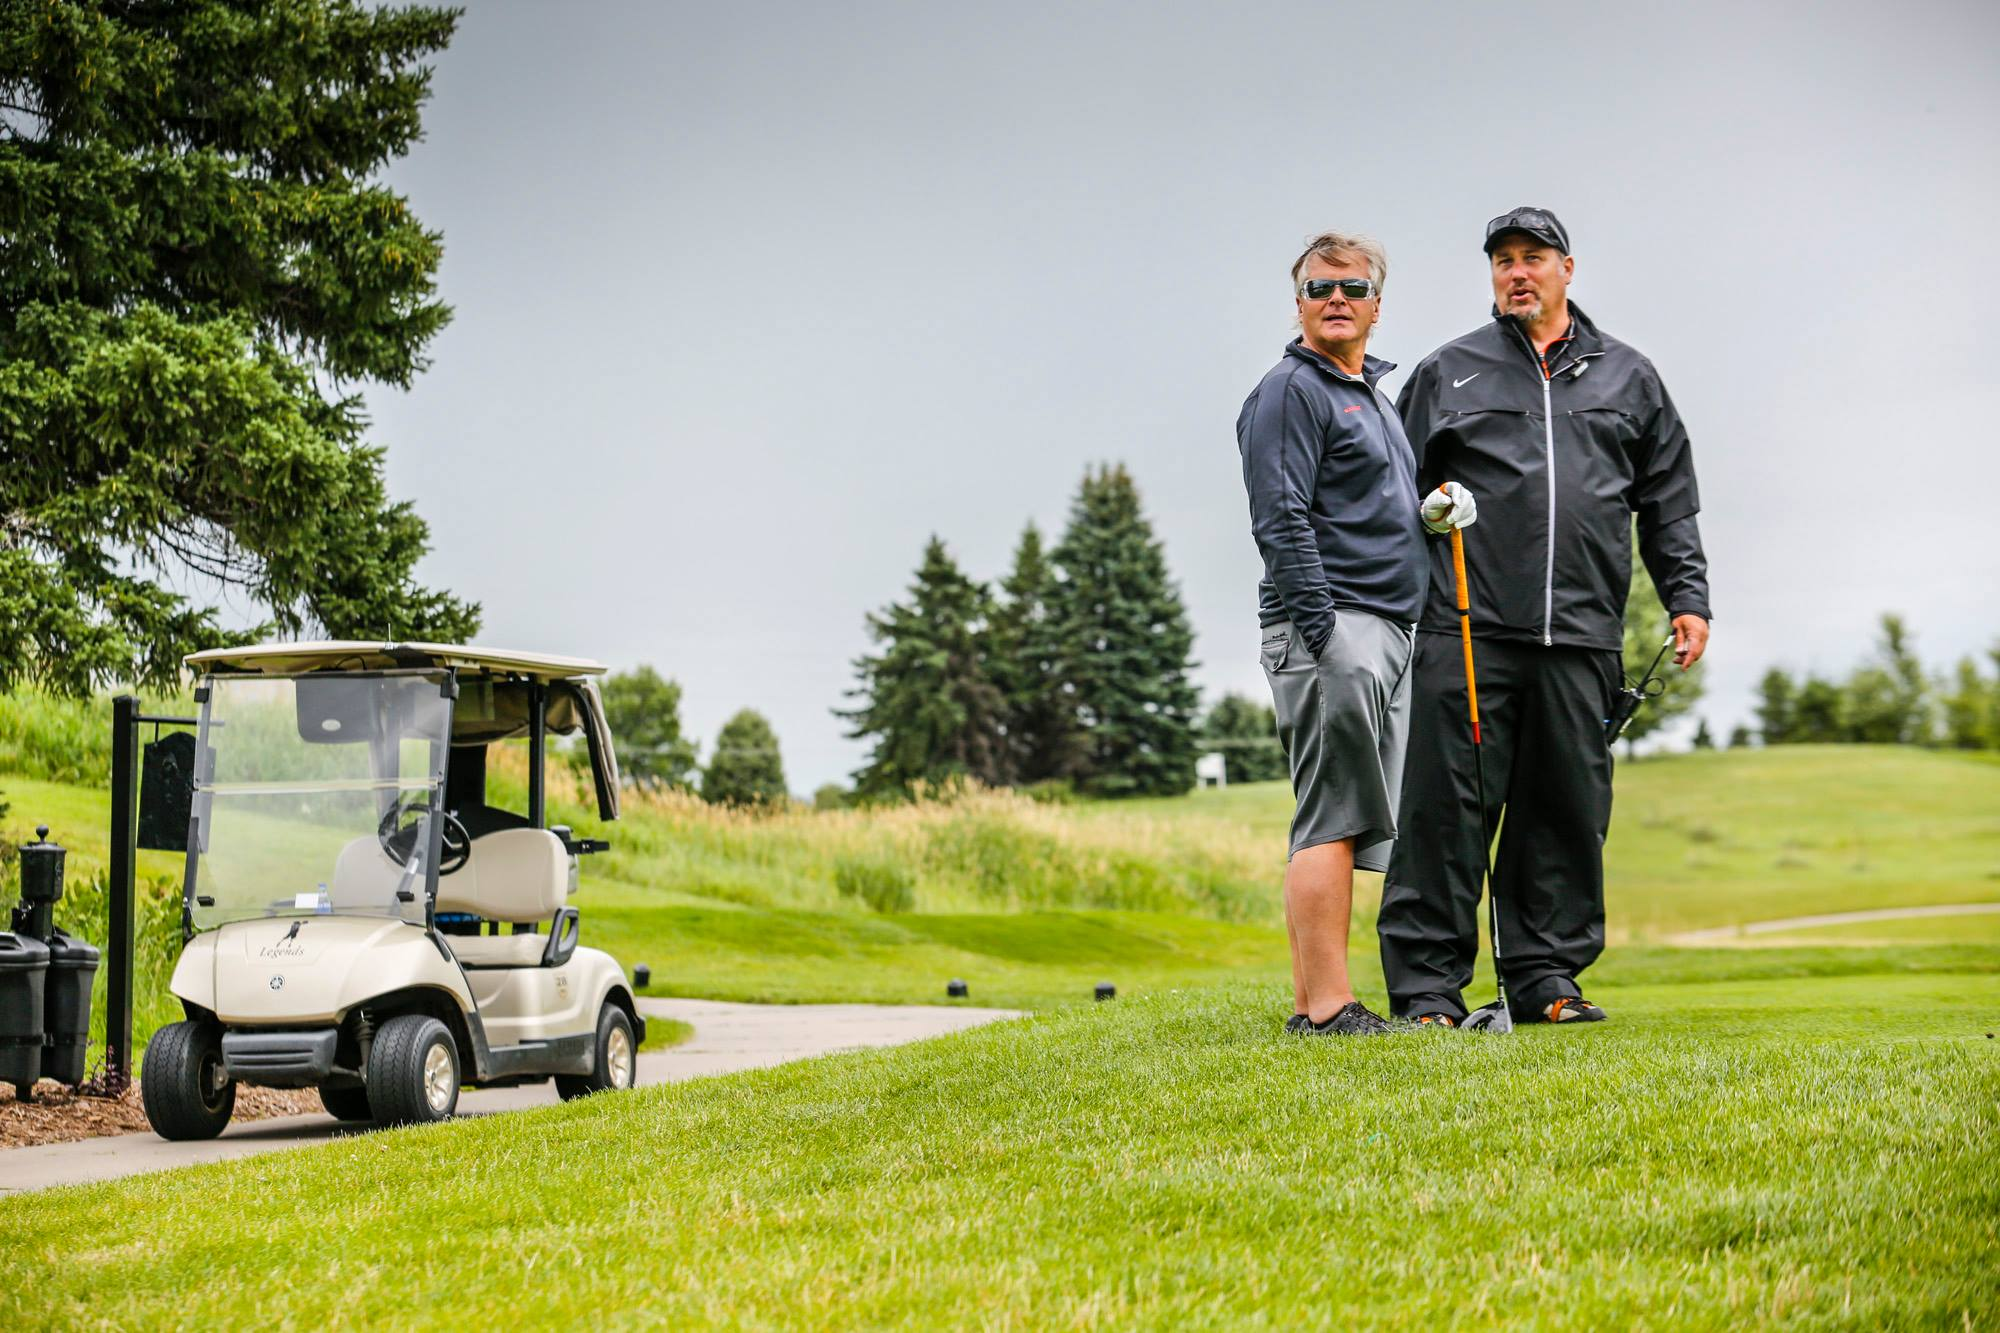 Managing Top 10 charity golf event